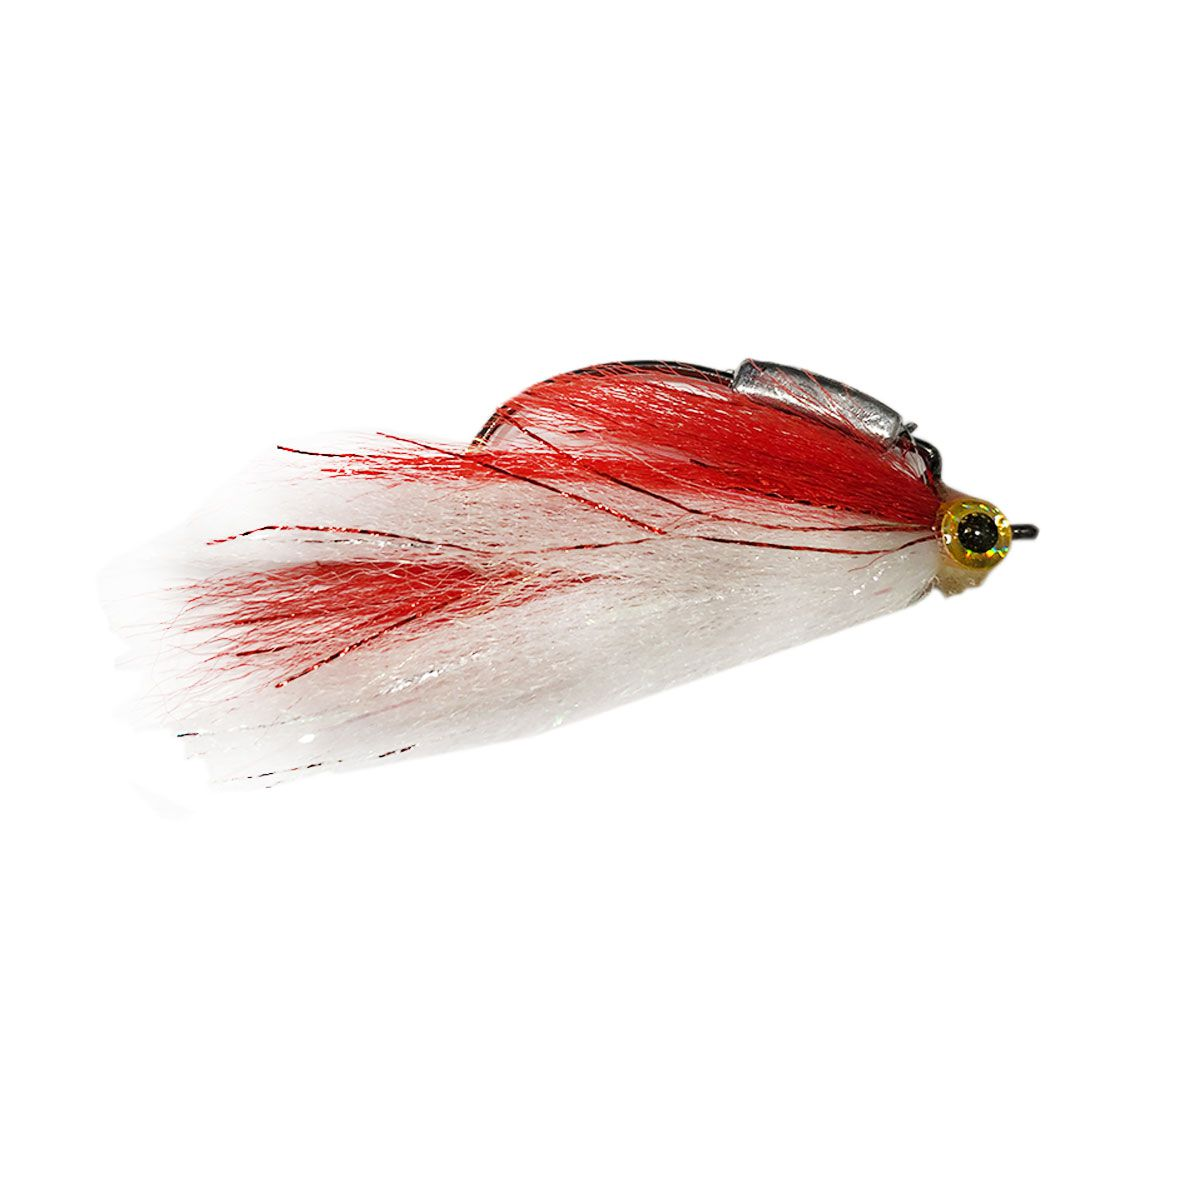 Isca Jig Lure Maker Lastreado Single Tail 7g 4/0